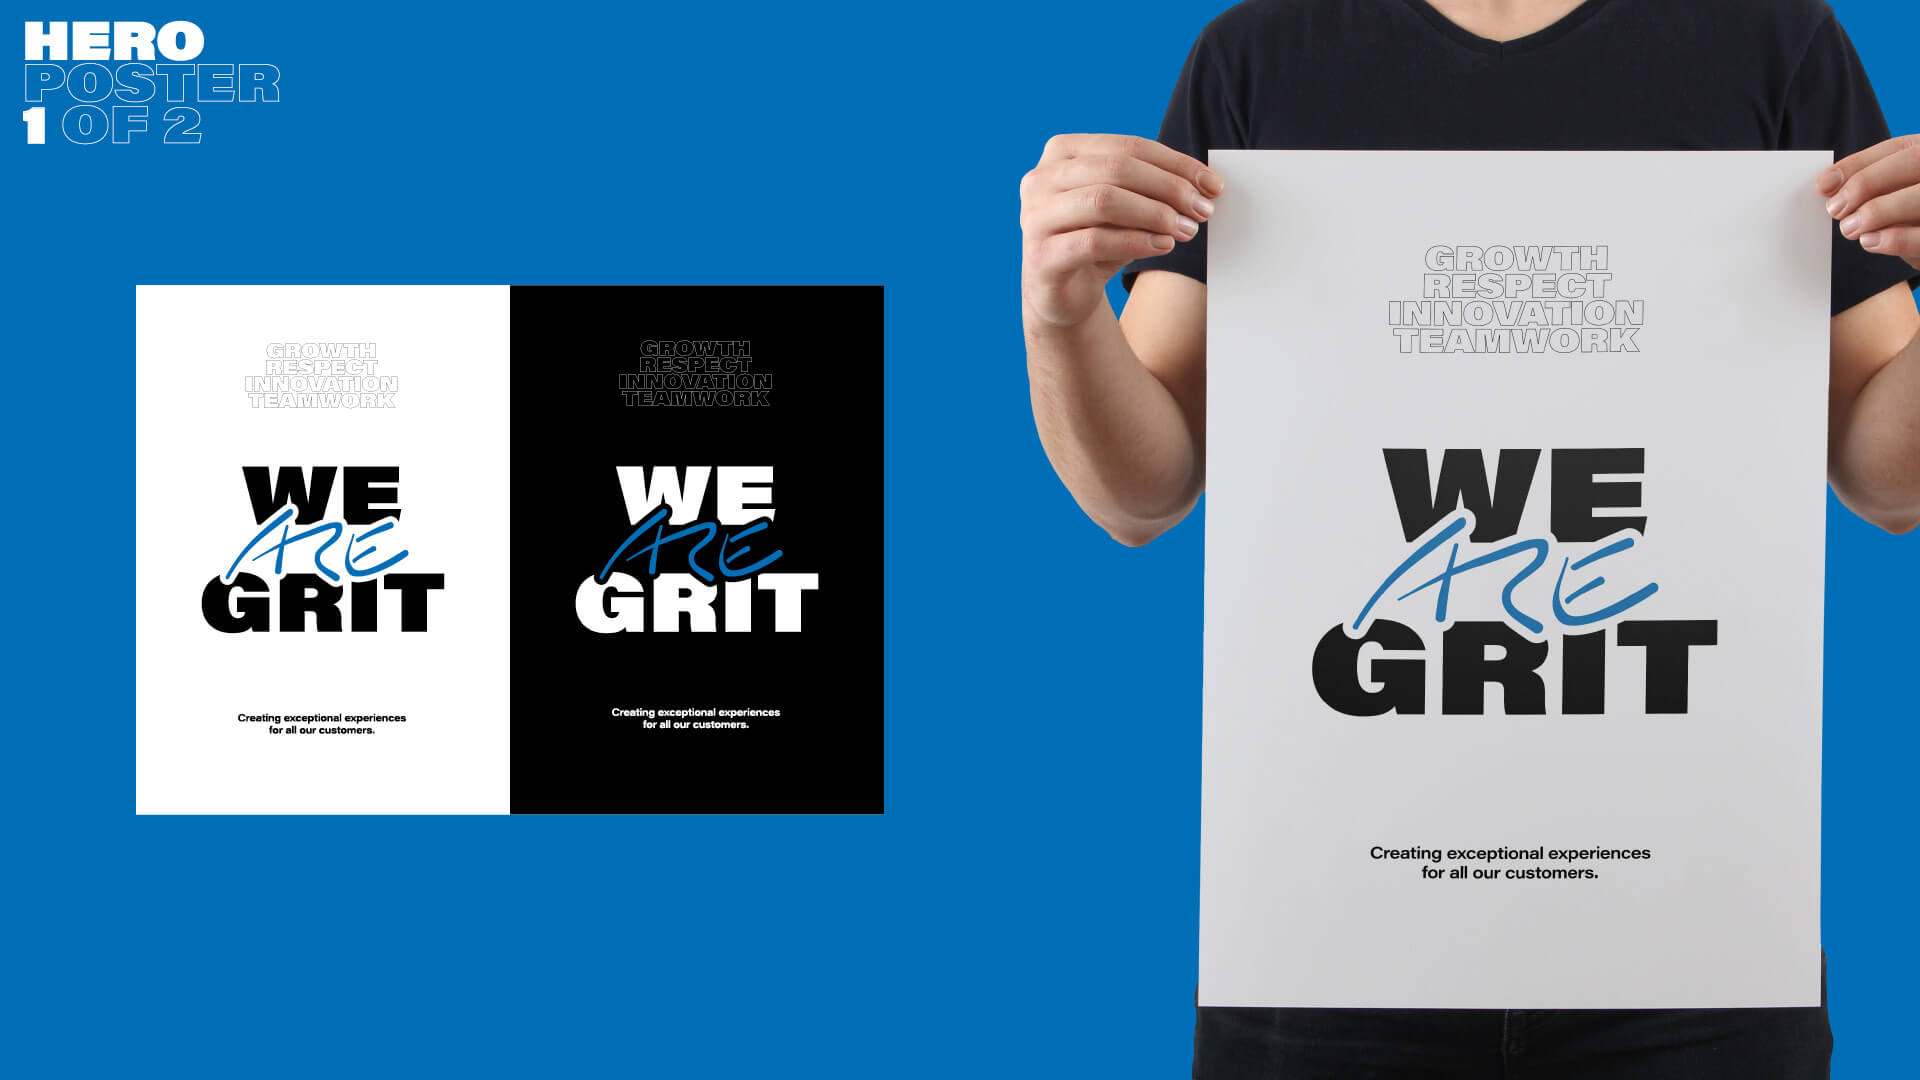 We ARE Grit – Hero Poster 1